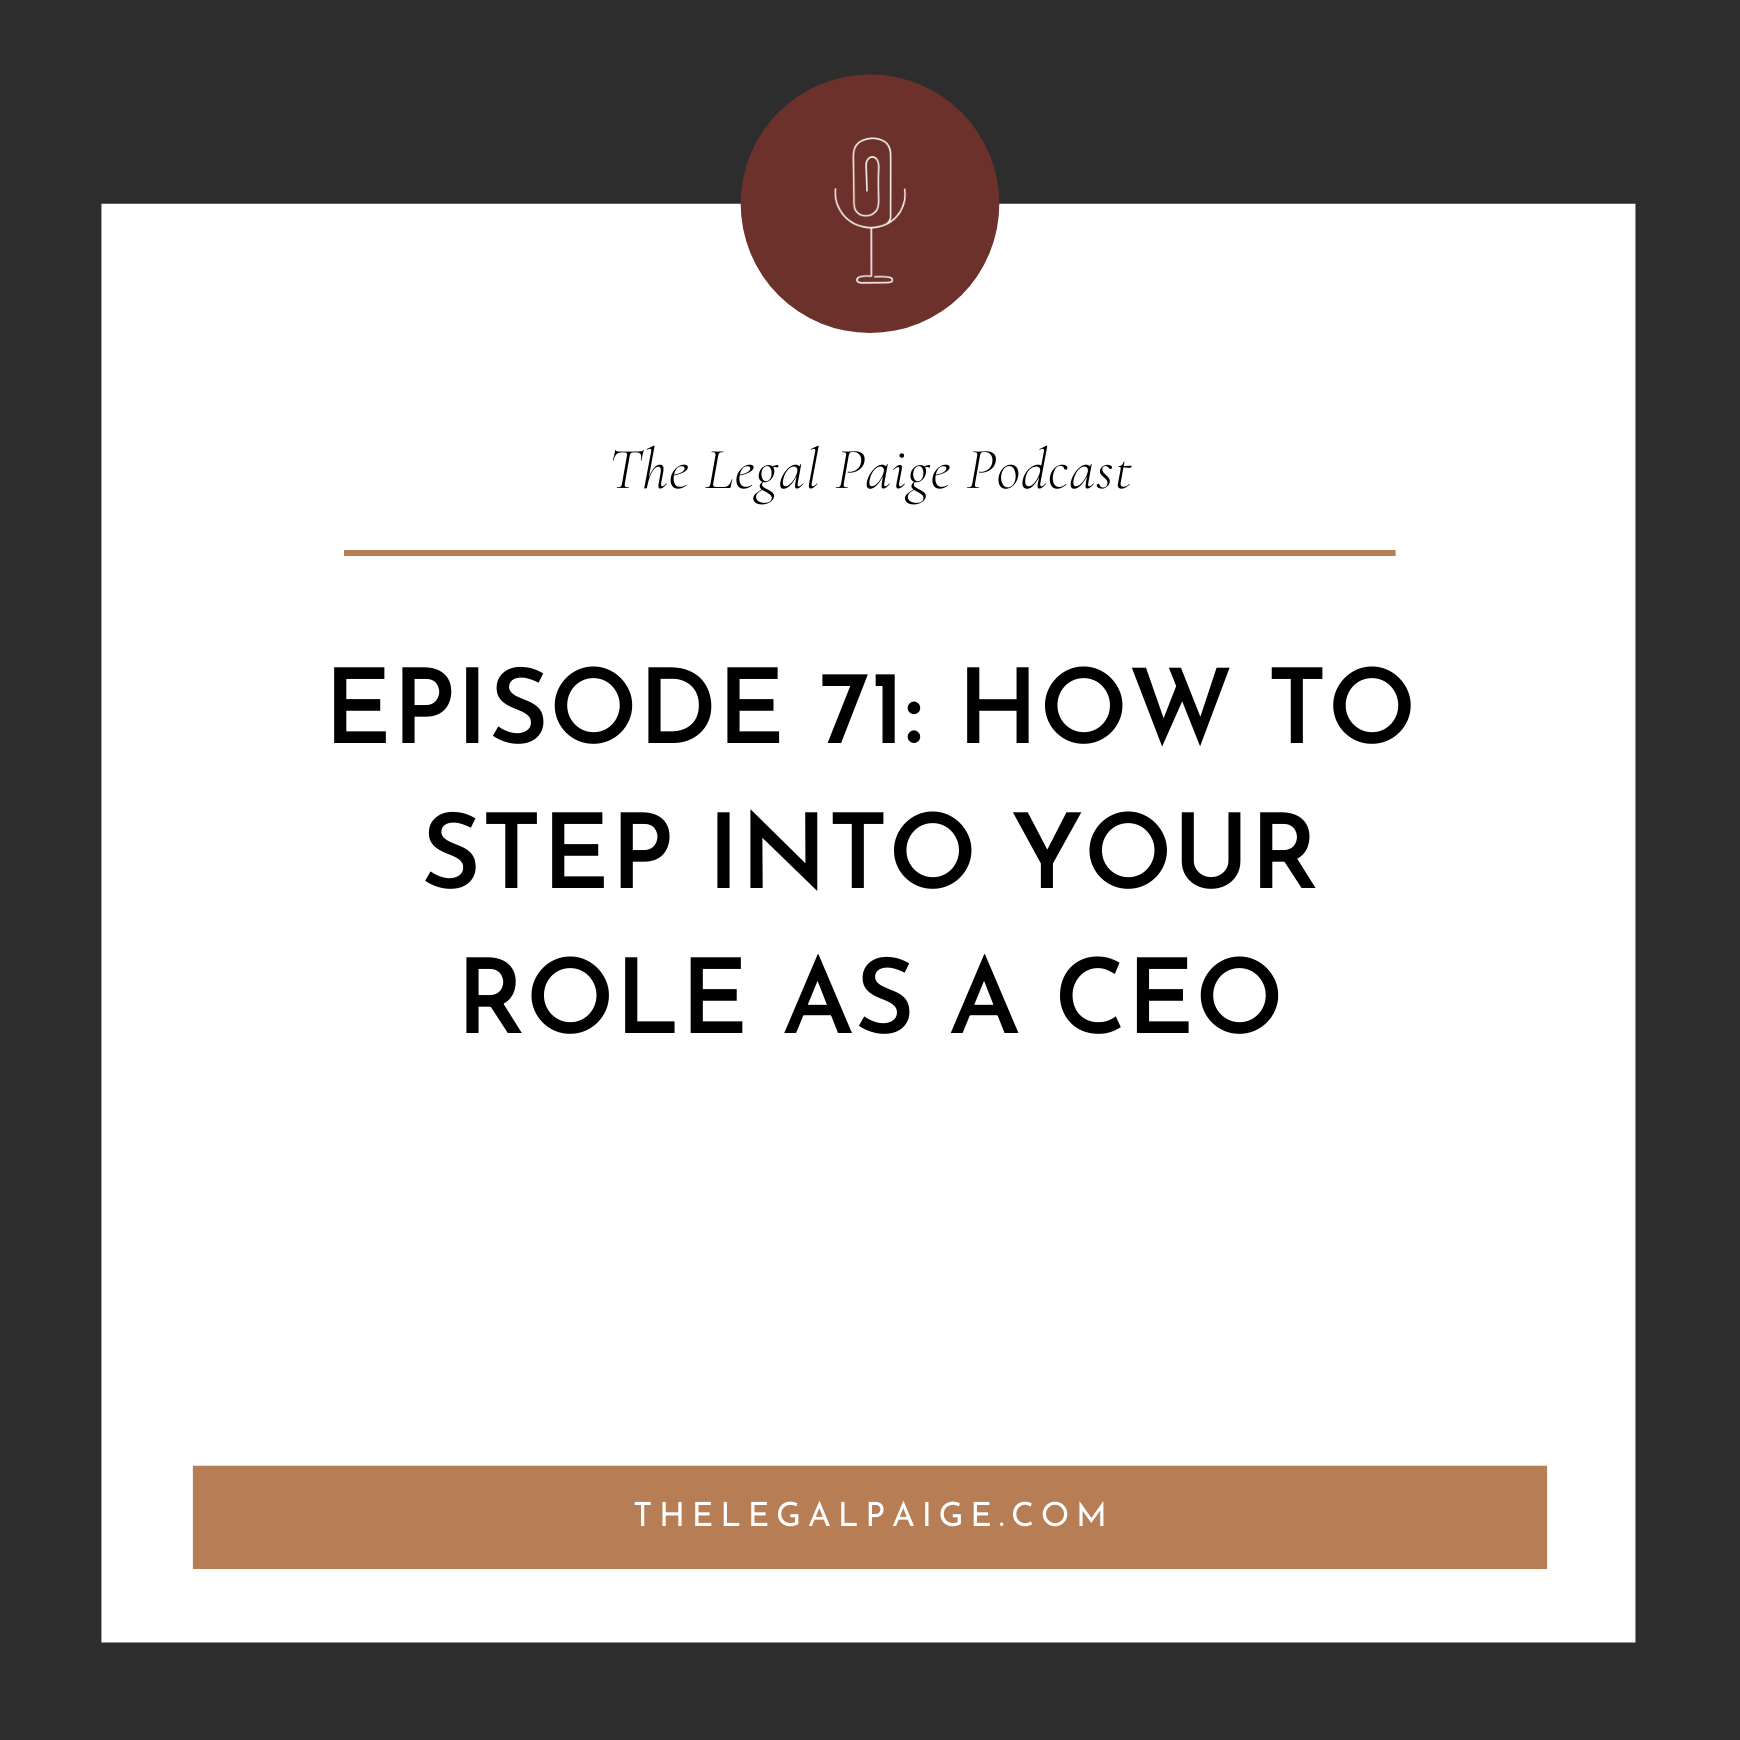 Episode 71: How To Step Into Your Role As A CEO